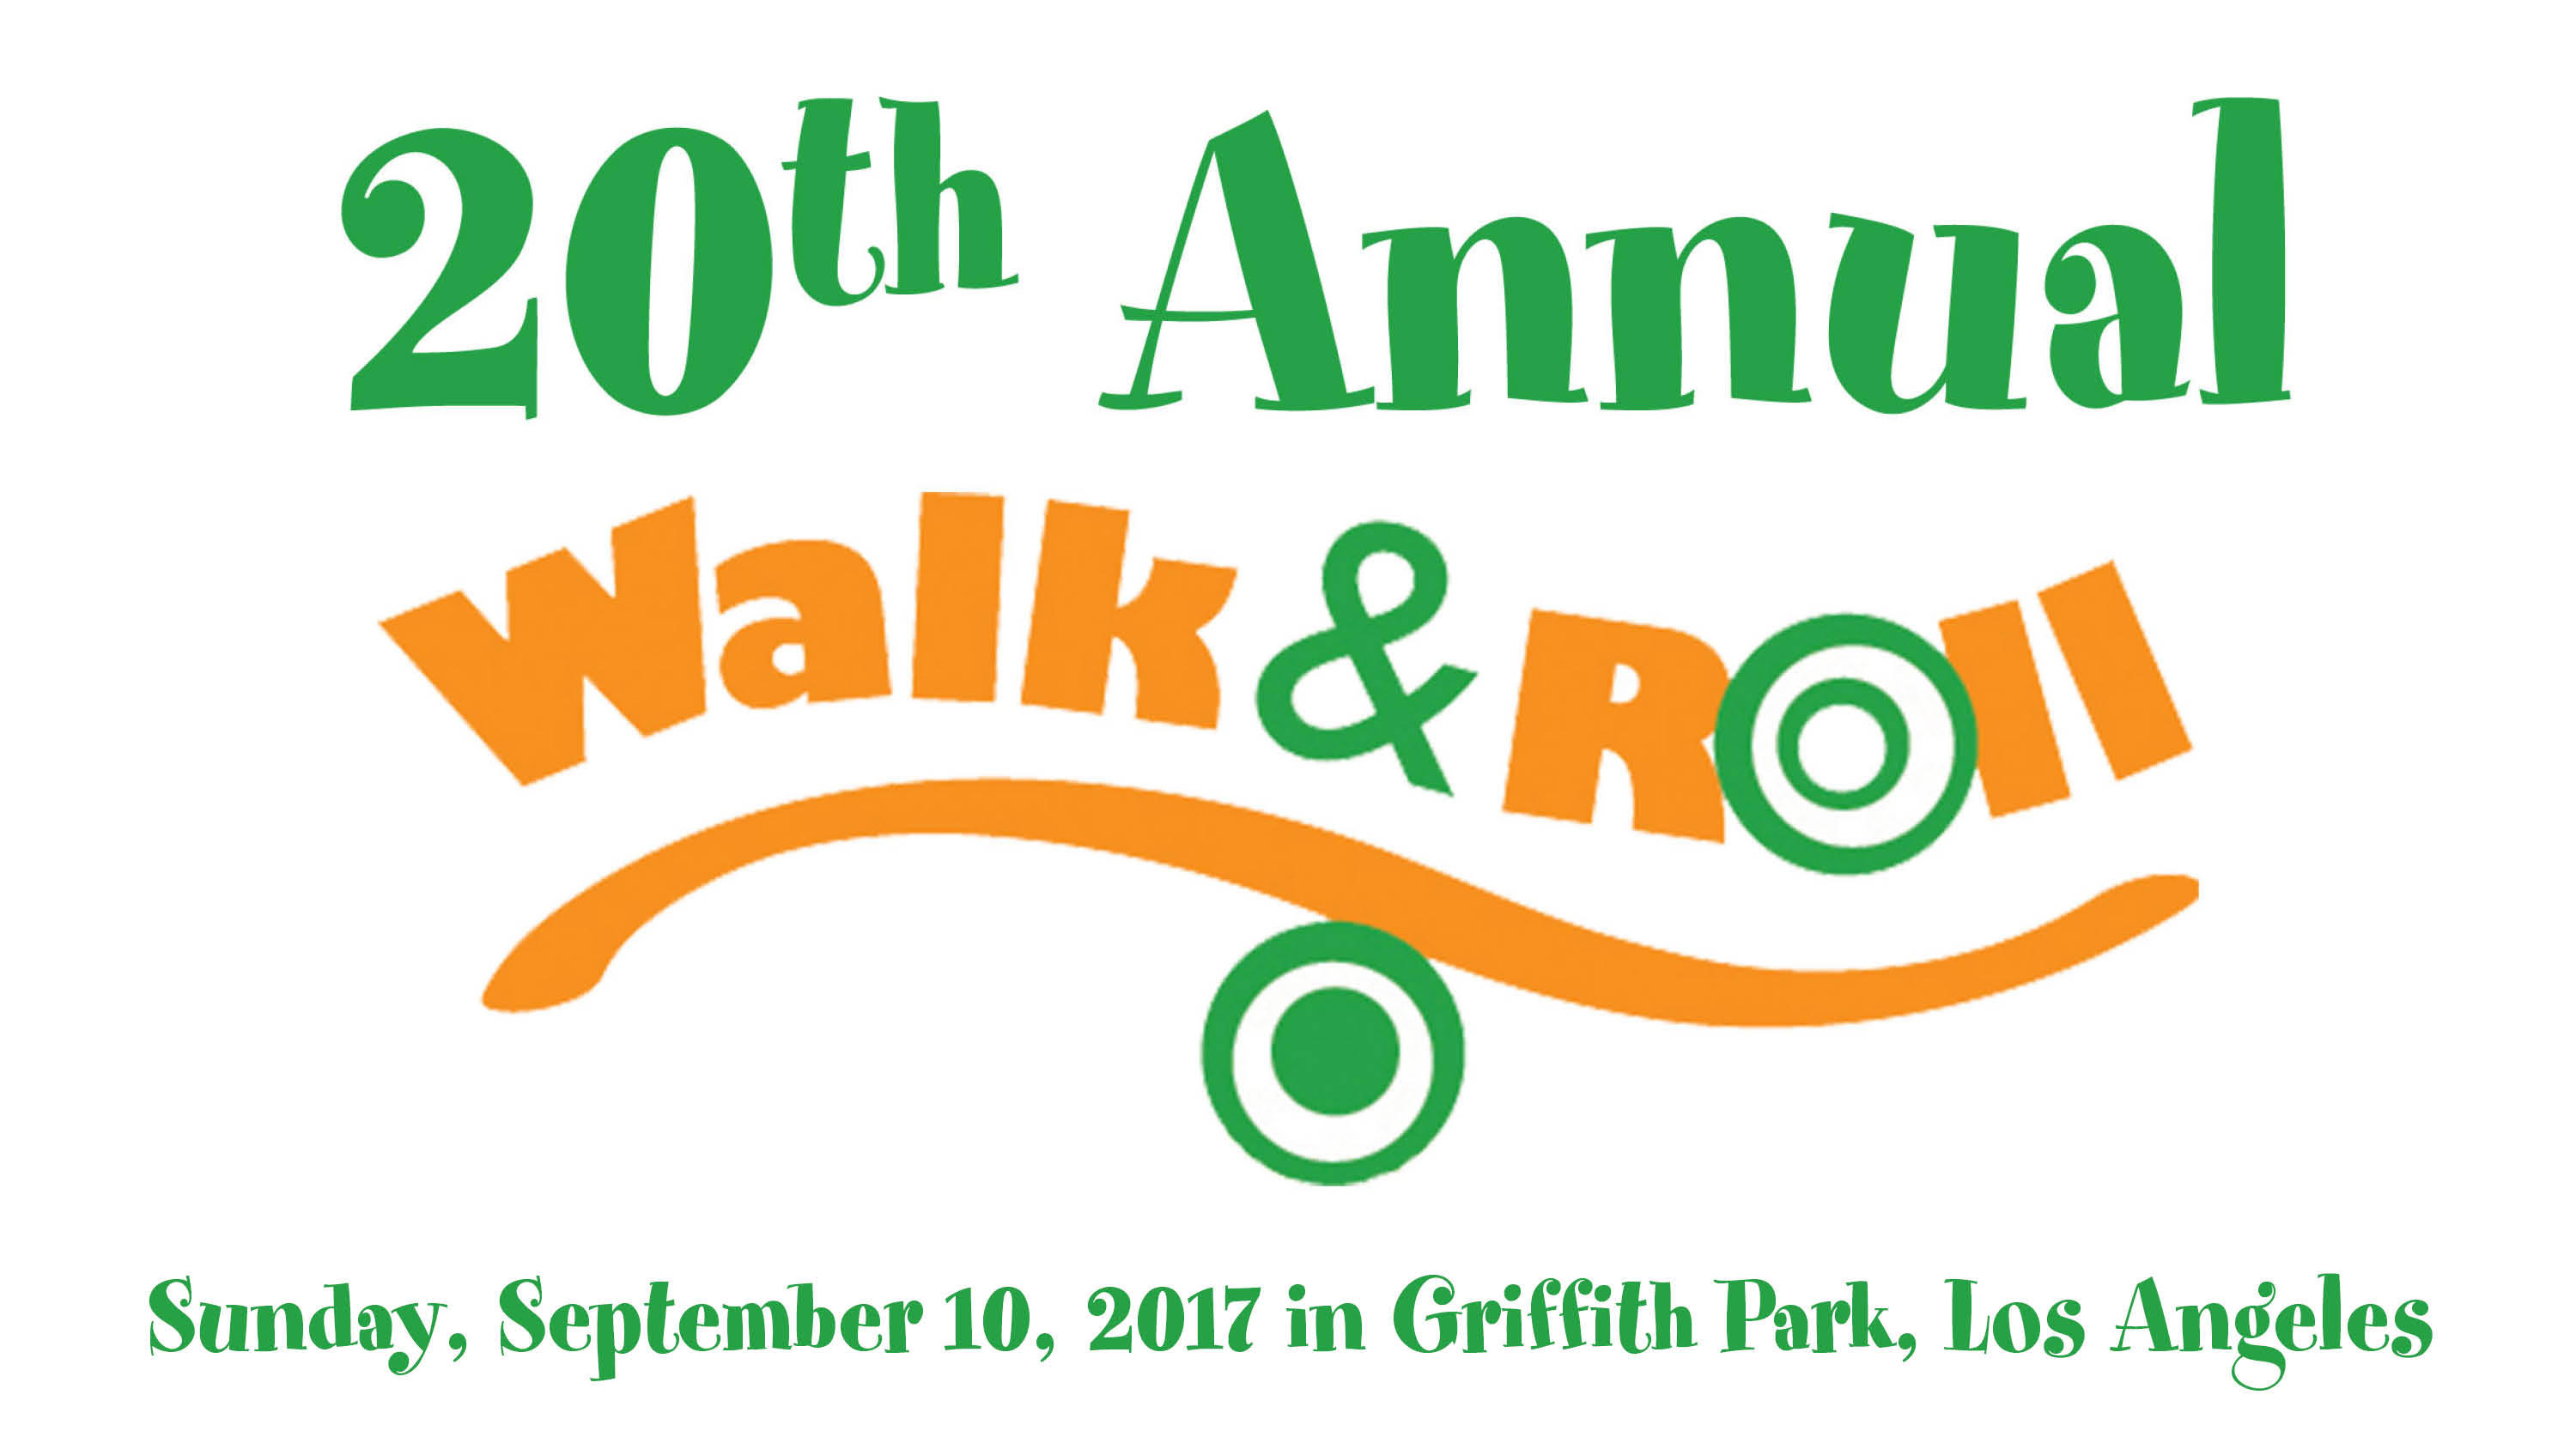 Help us celebrate our 20th Anniversary at our 20th Annual Walk & Roll!